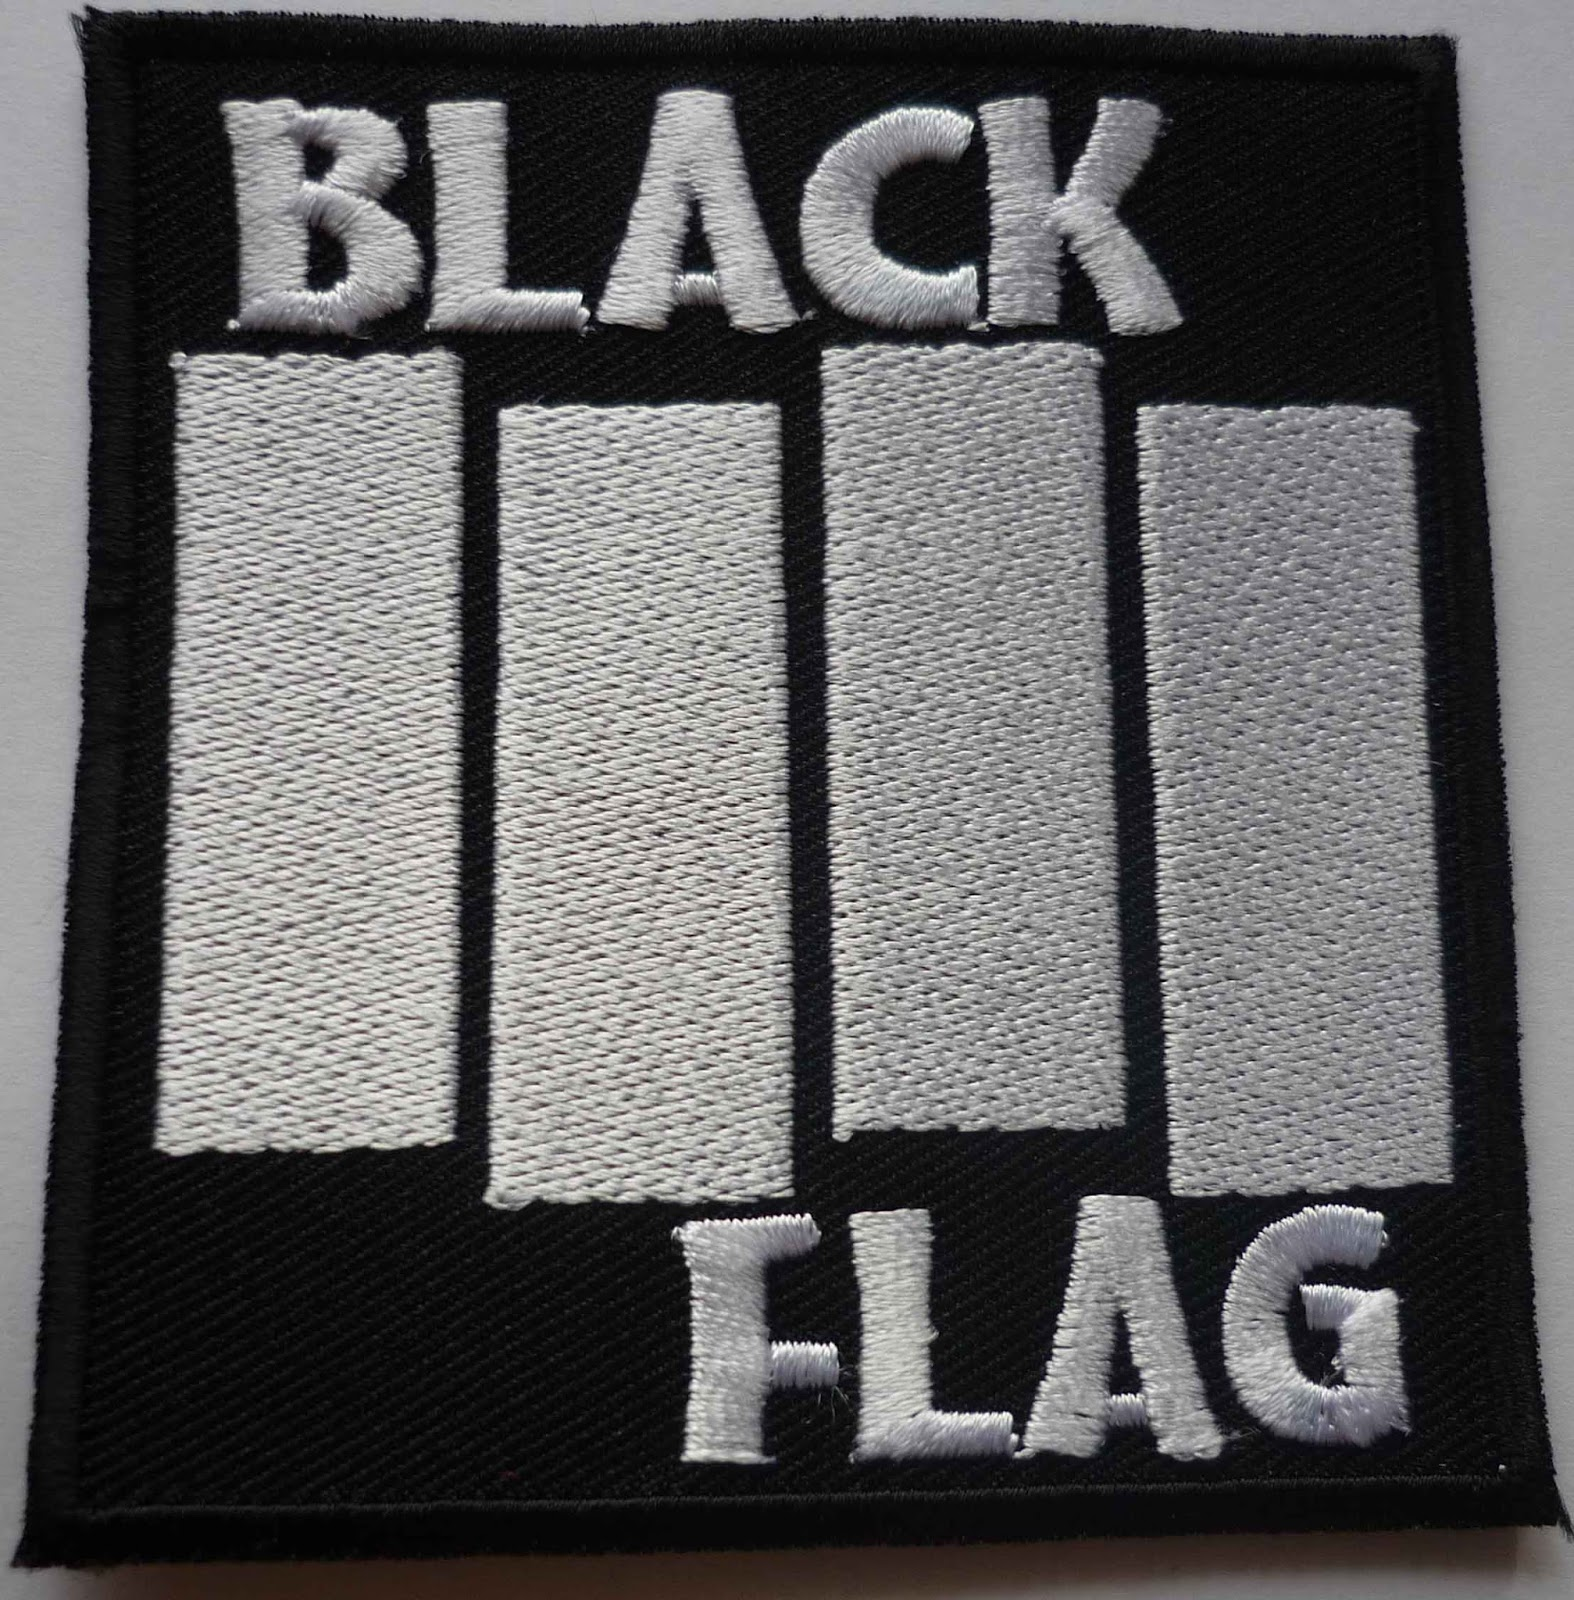 19a1e1018 Black Seeds Records  BLACK FLAG embroidered patch